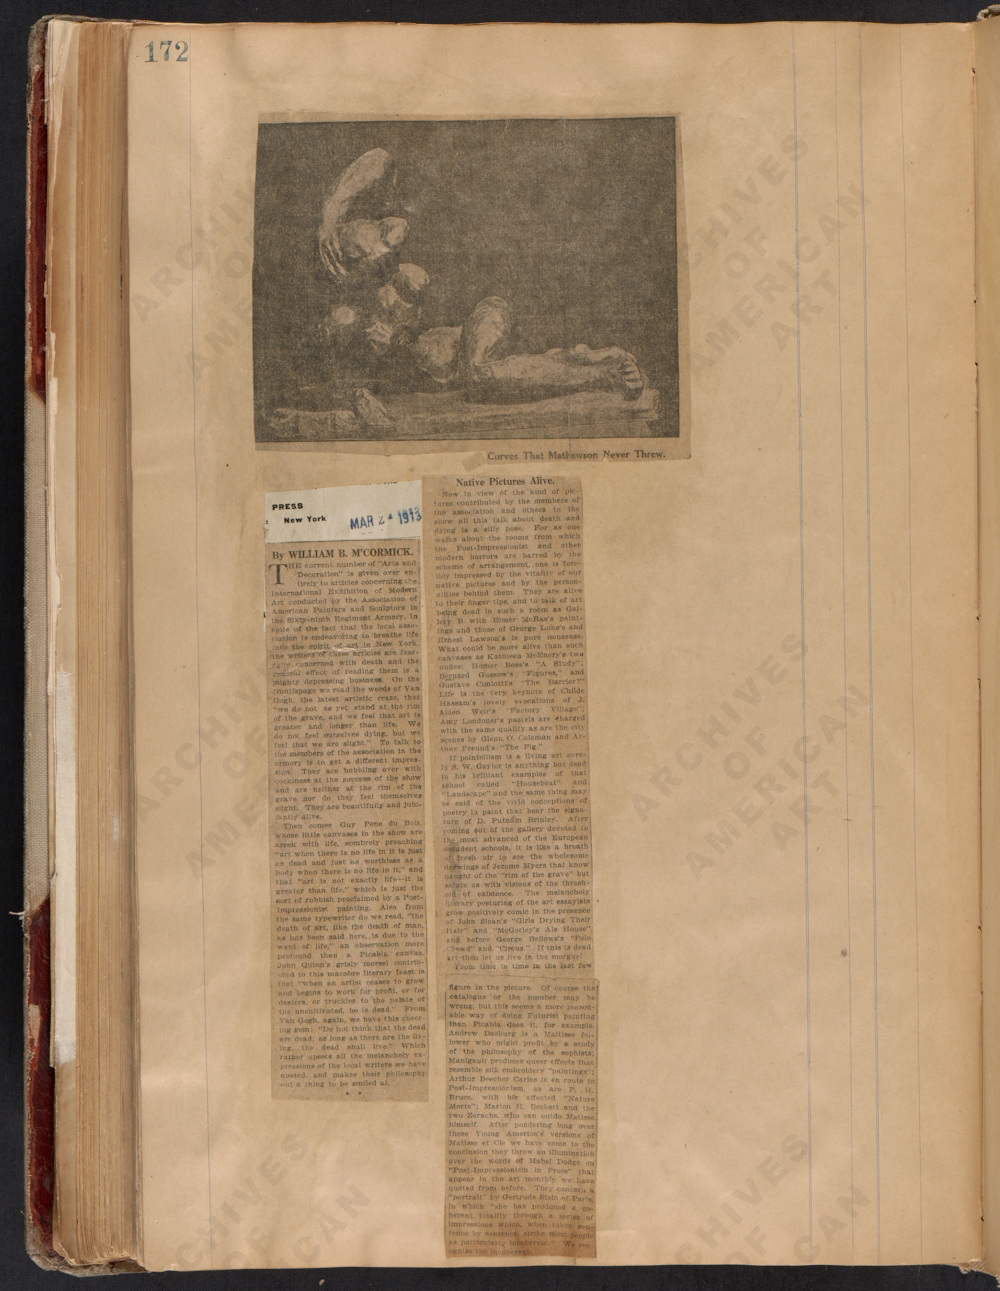 Image for page 176